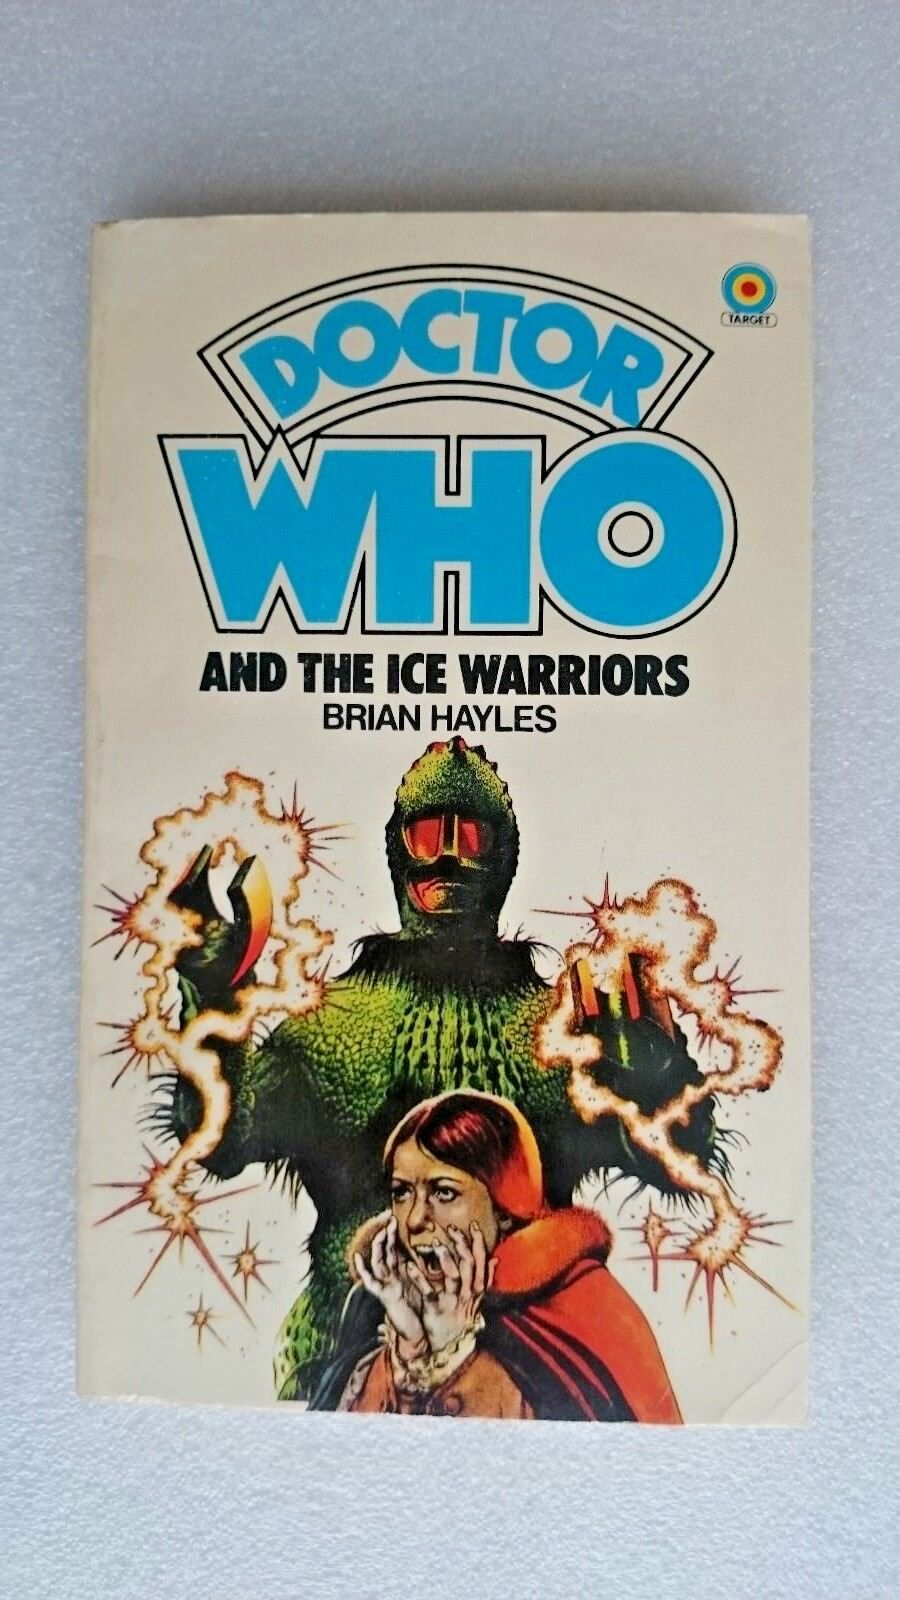 Doctor Who and the Ice Warriors by Brian Hayles (Paperback, 1982)